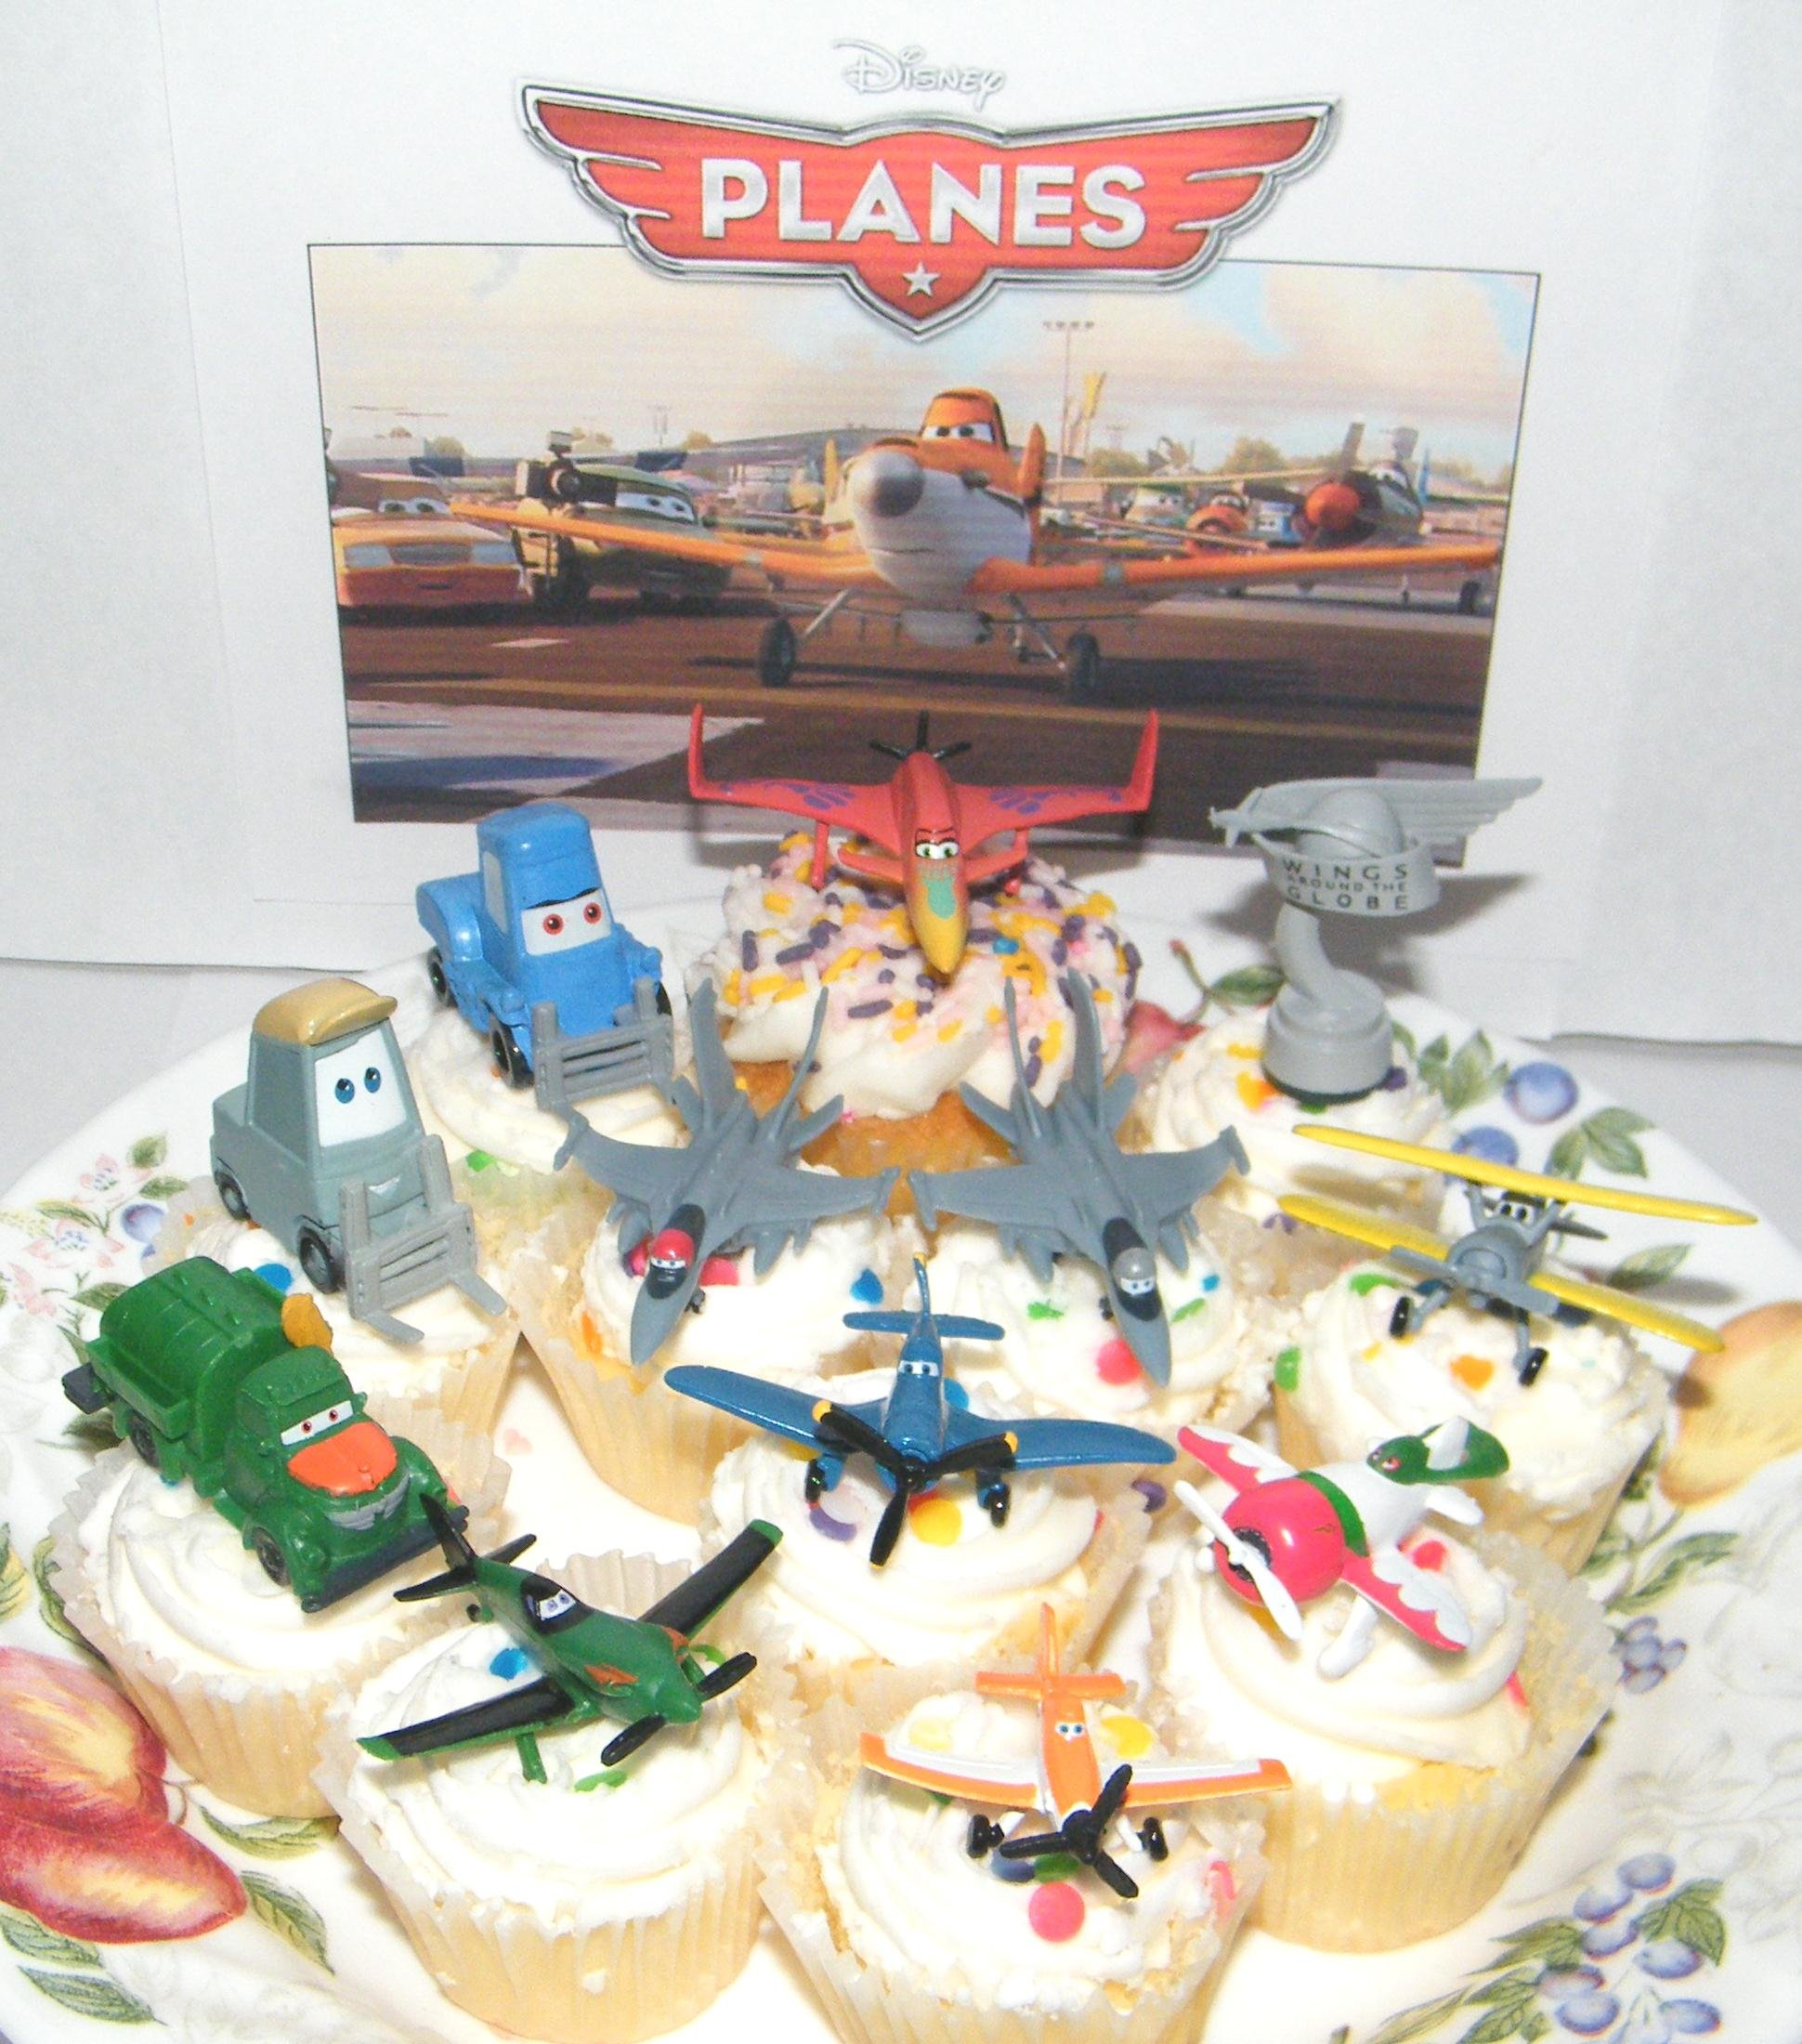 Disney Planes Movie Figure Deluxe Cake Toppers / Cupcake Party Favor Decorations Set of 12 with Dusty, Rally Trophy, Racers, Jet Fighters and More!